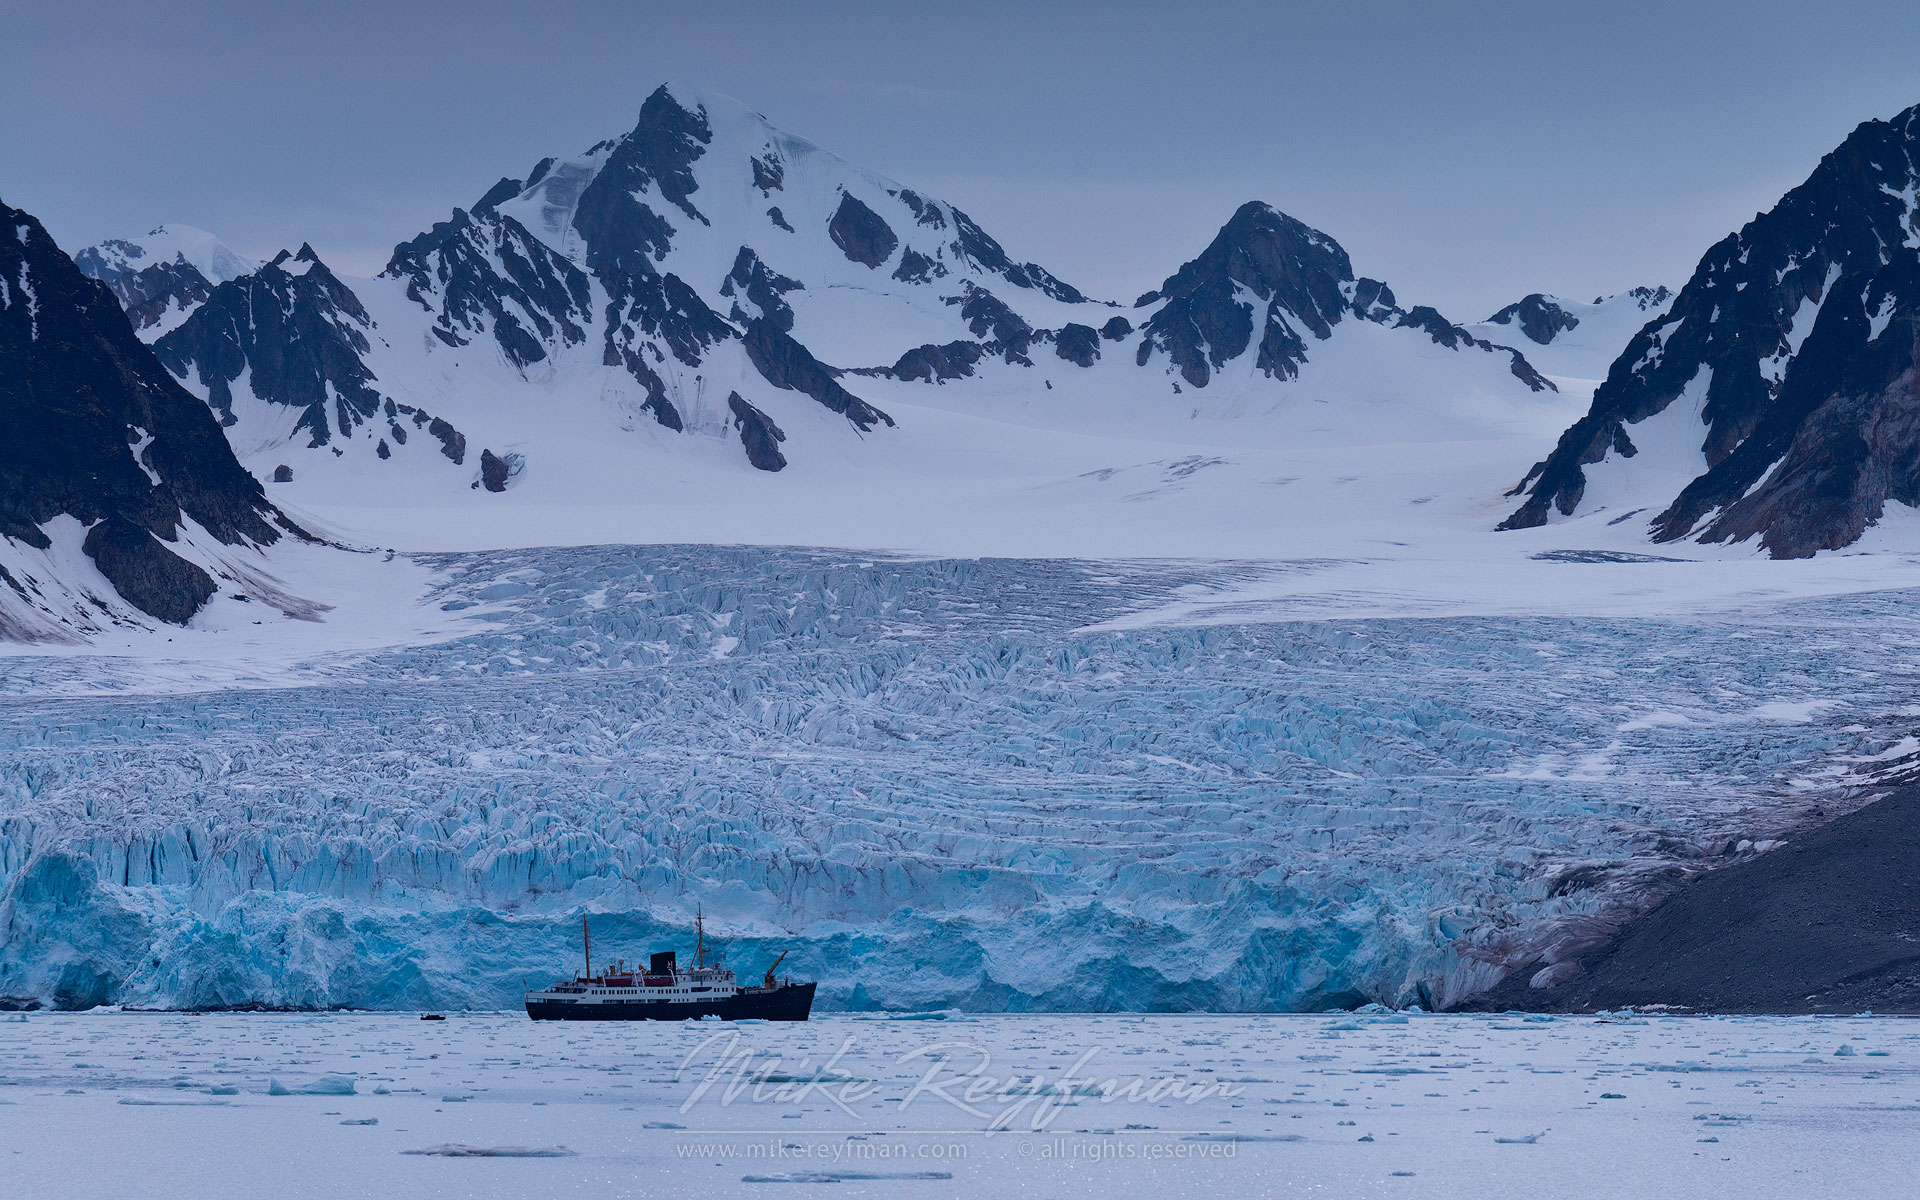 Expedition boat in-front of Monaco Glacier. Liefdefjorden (Love-fjord), Svalbard (Spitsbergen) Archipelago, Norway. - Arctic-Landscape-Svalbard-Spitsbergen-Norway - Mike Reyfman Photography